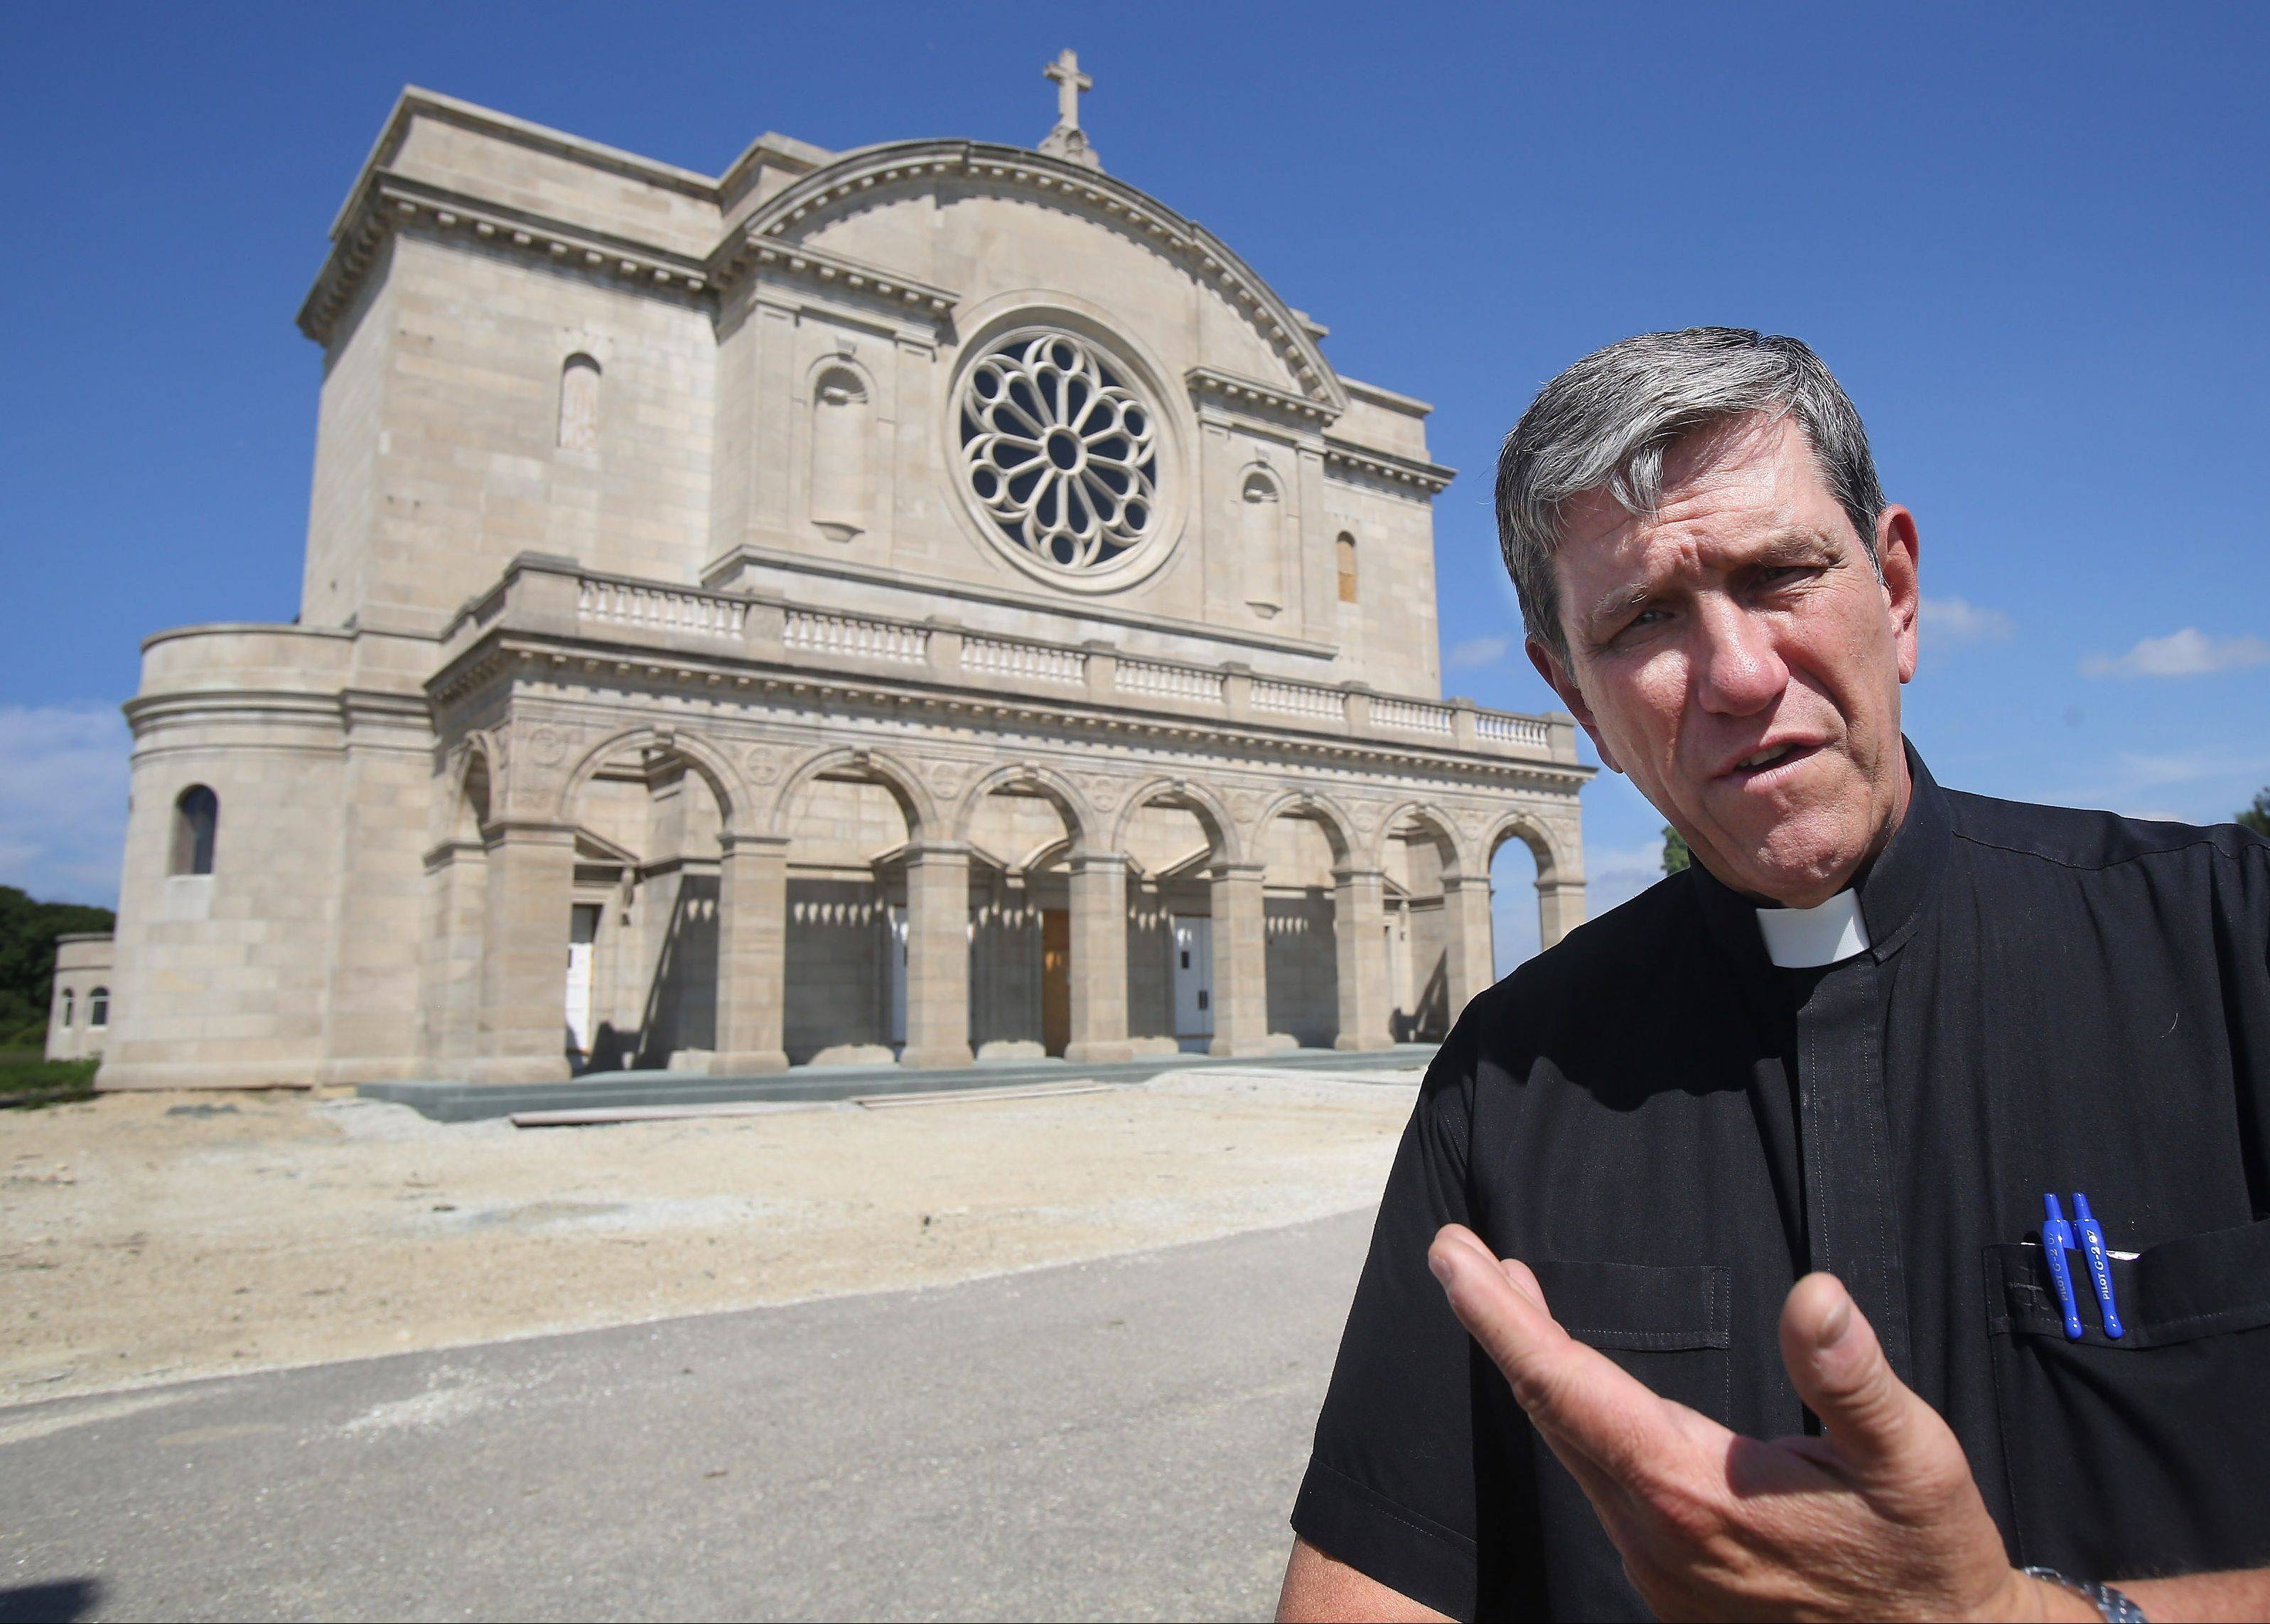 The Rev. John Jamnicky describes how the facade of the now demolished St. John of God Church in Chicago was reused as the face of the new St. Raphael the Archangel Catholic Church in Old Mill Creek.